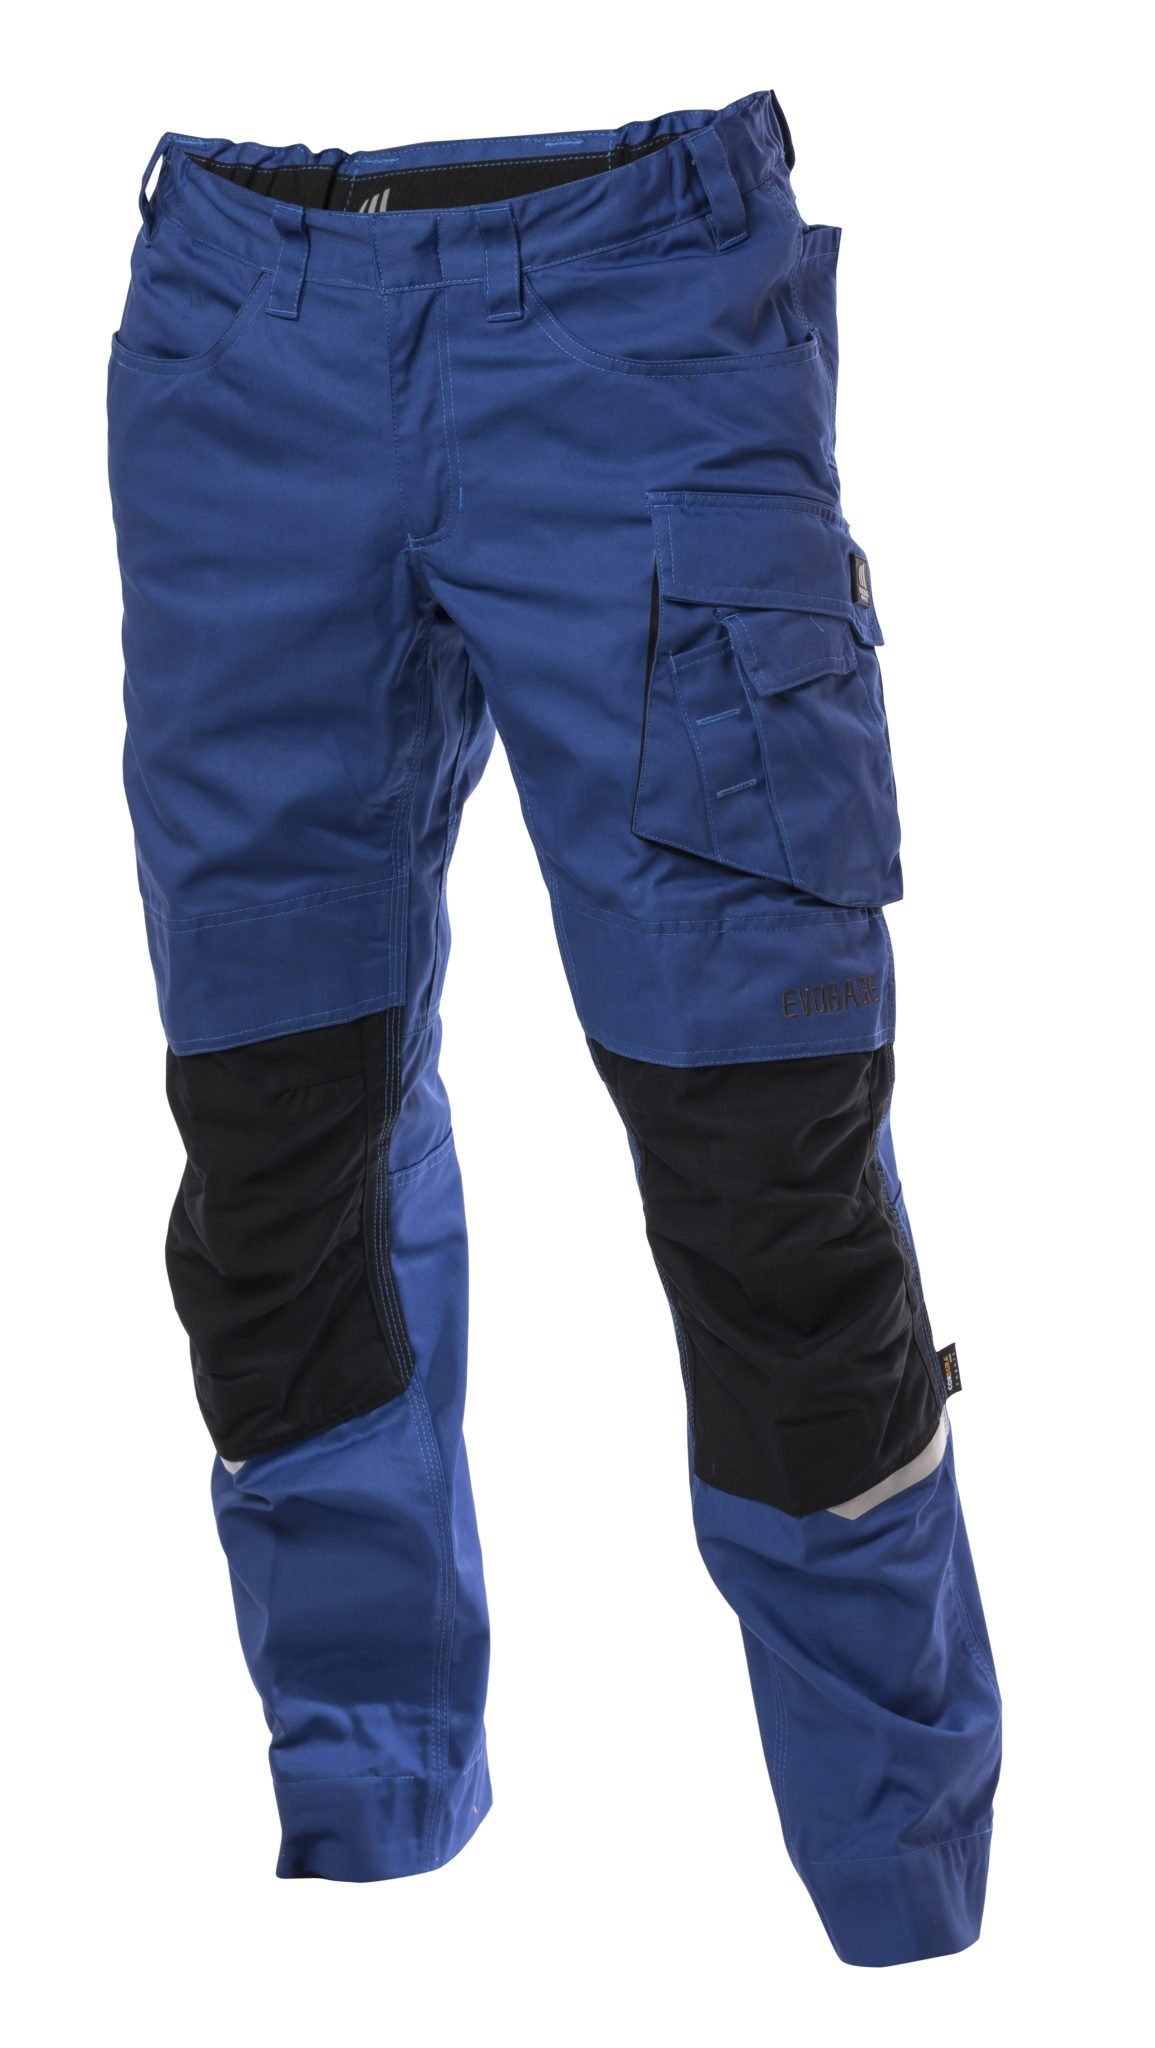 EVOBASE trouser for industry and production companies